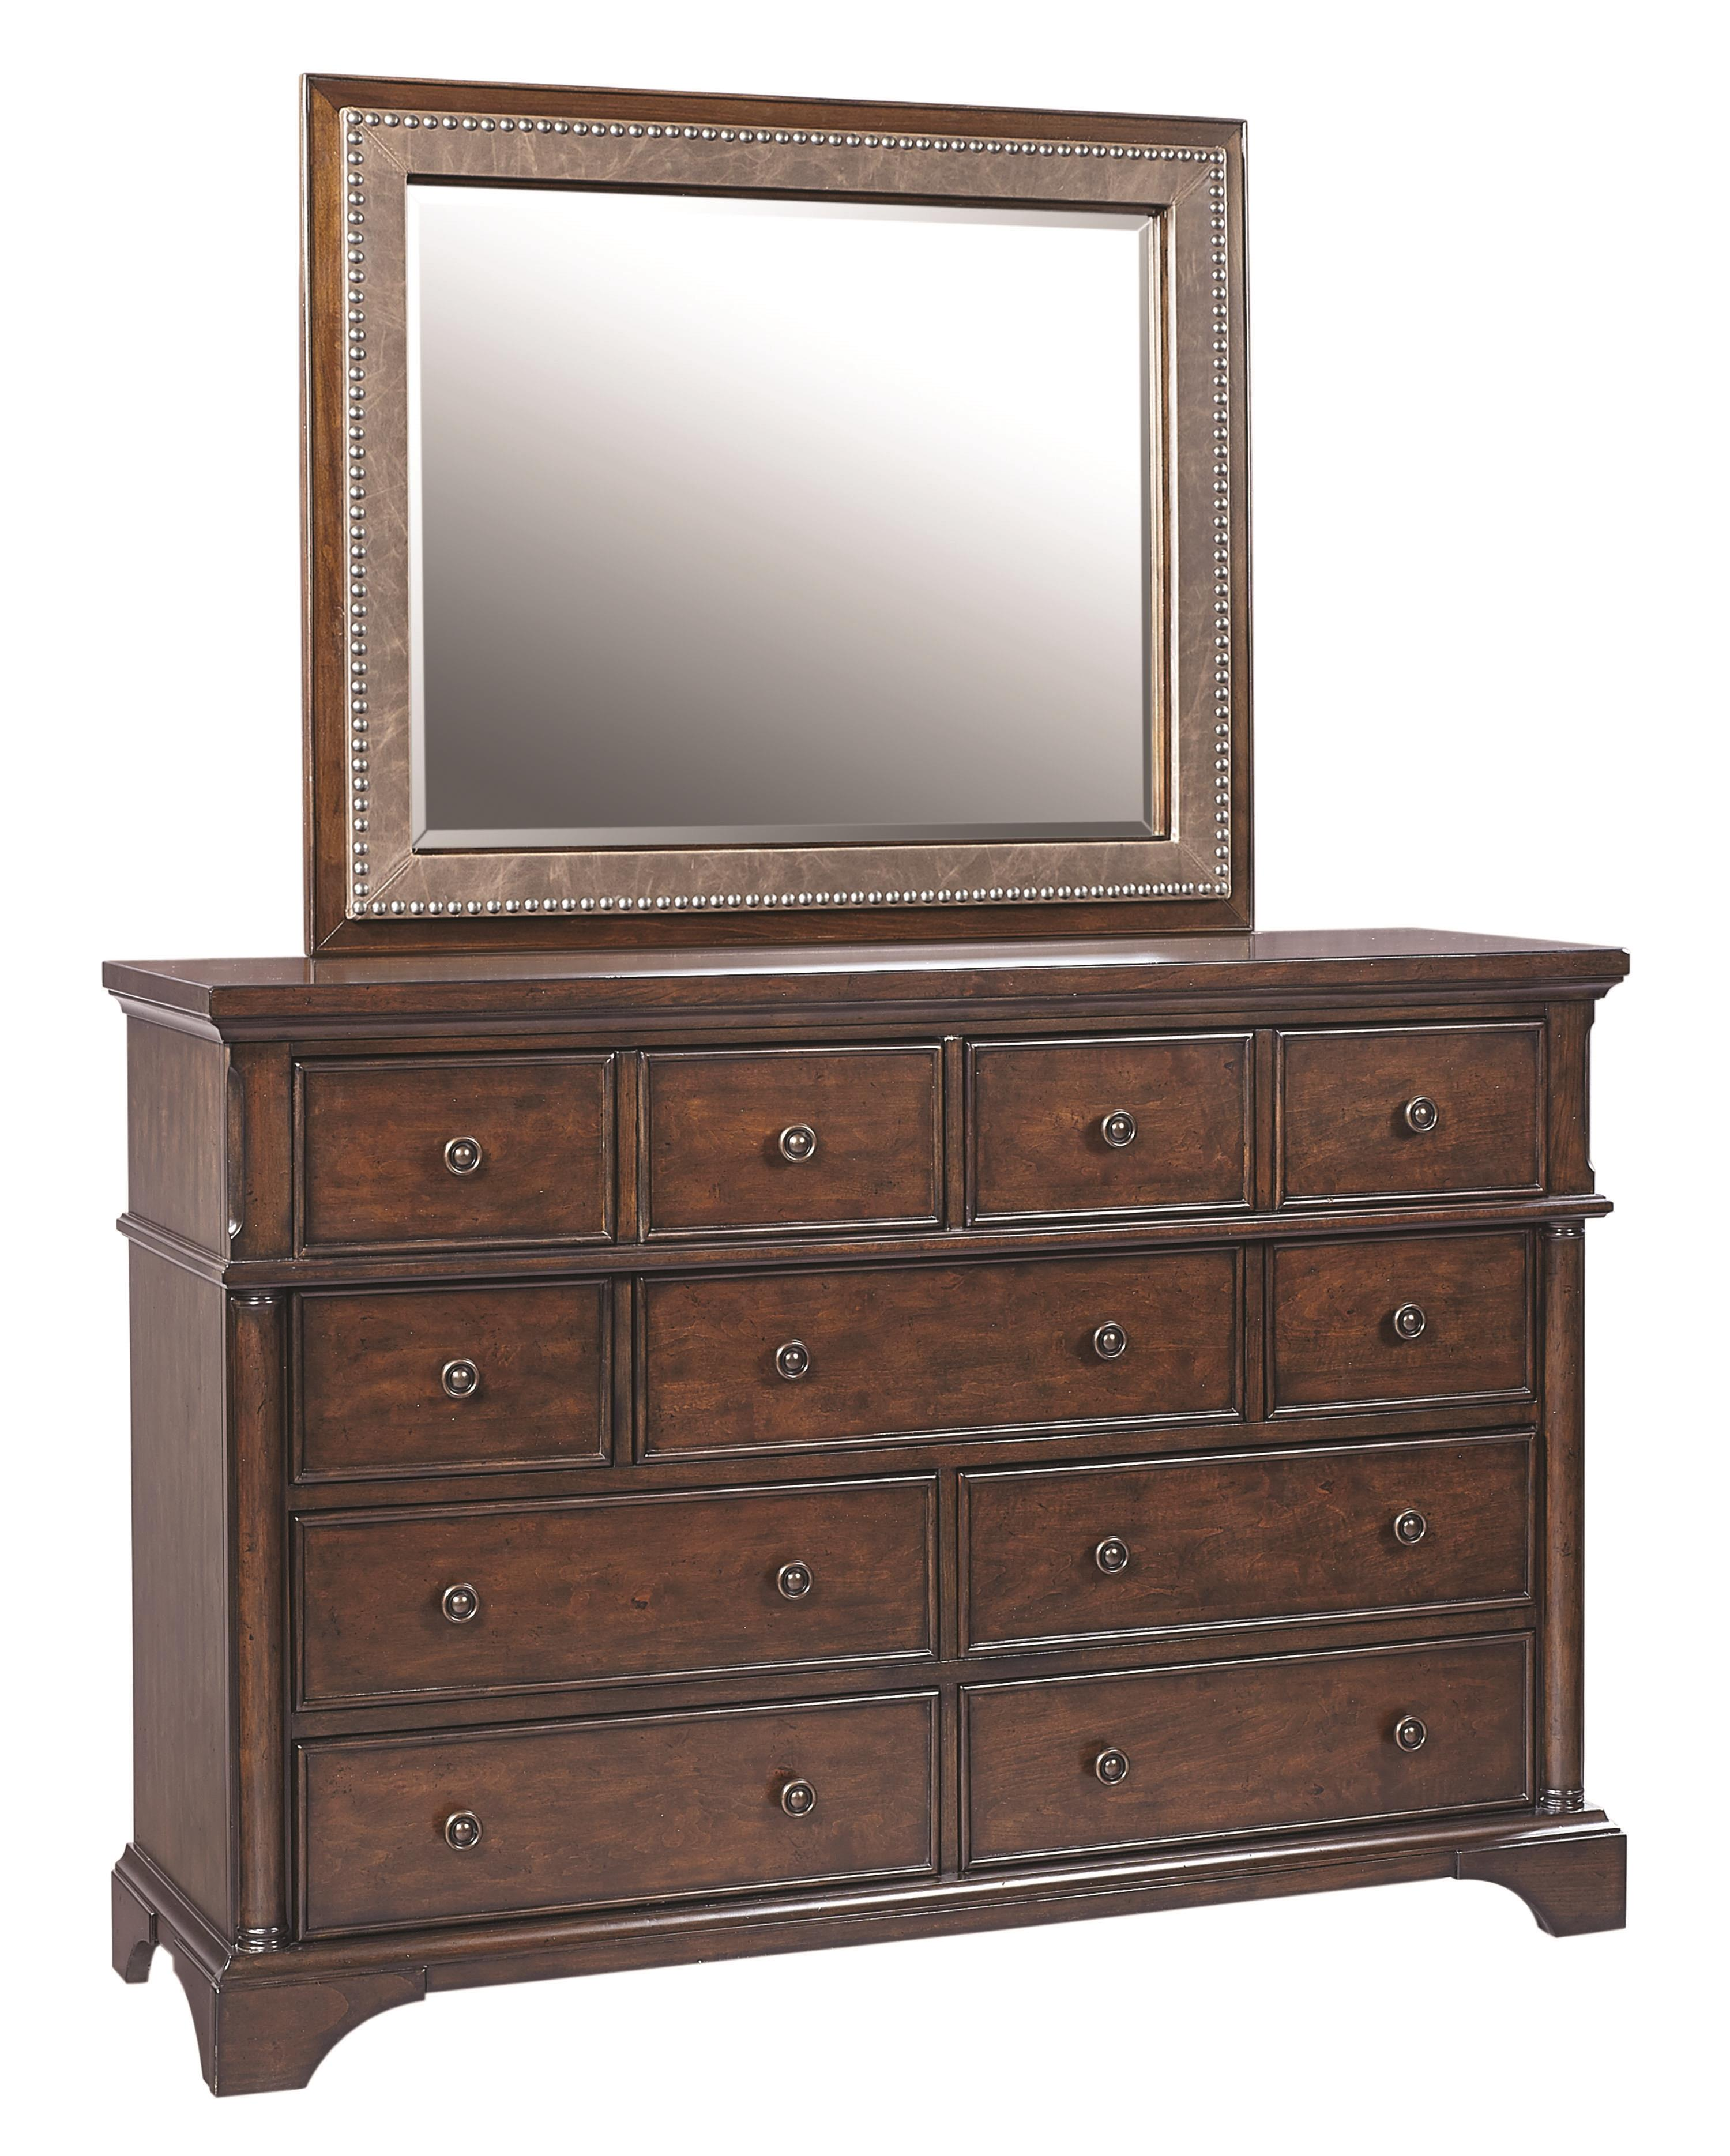 Bancroft Chesser with Bonded Leather Mirror by Aspenhome at Stoney Creek Furniture